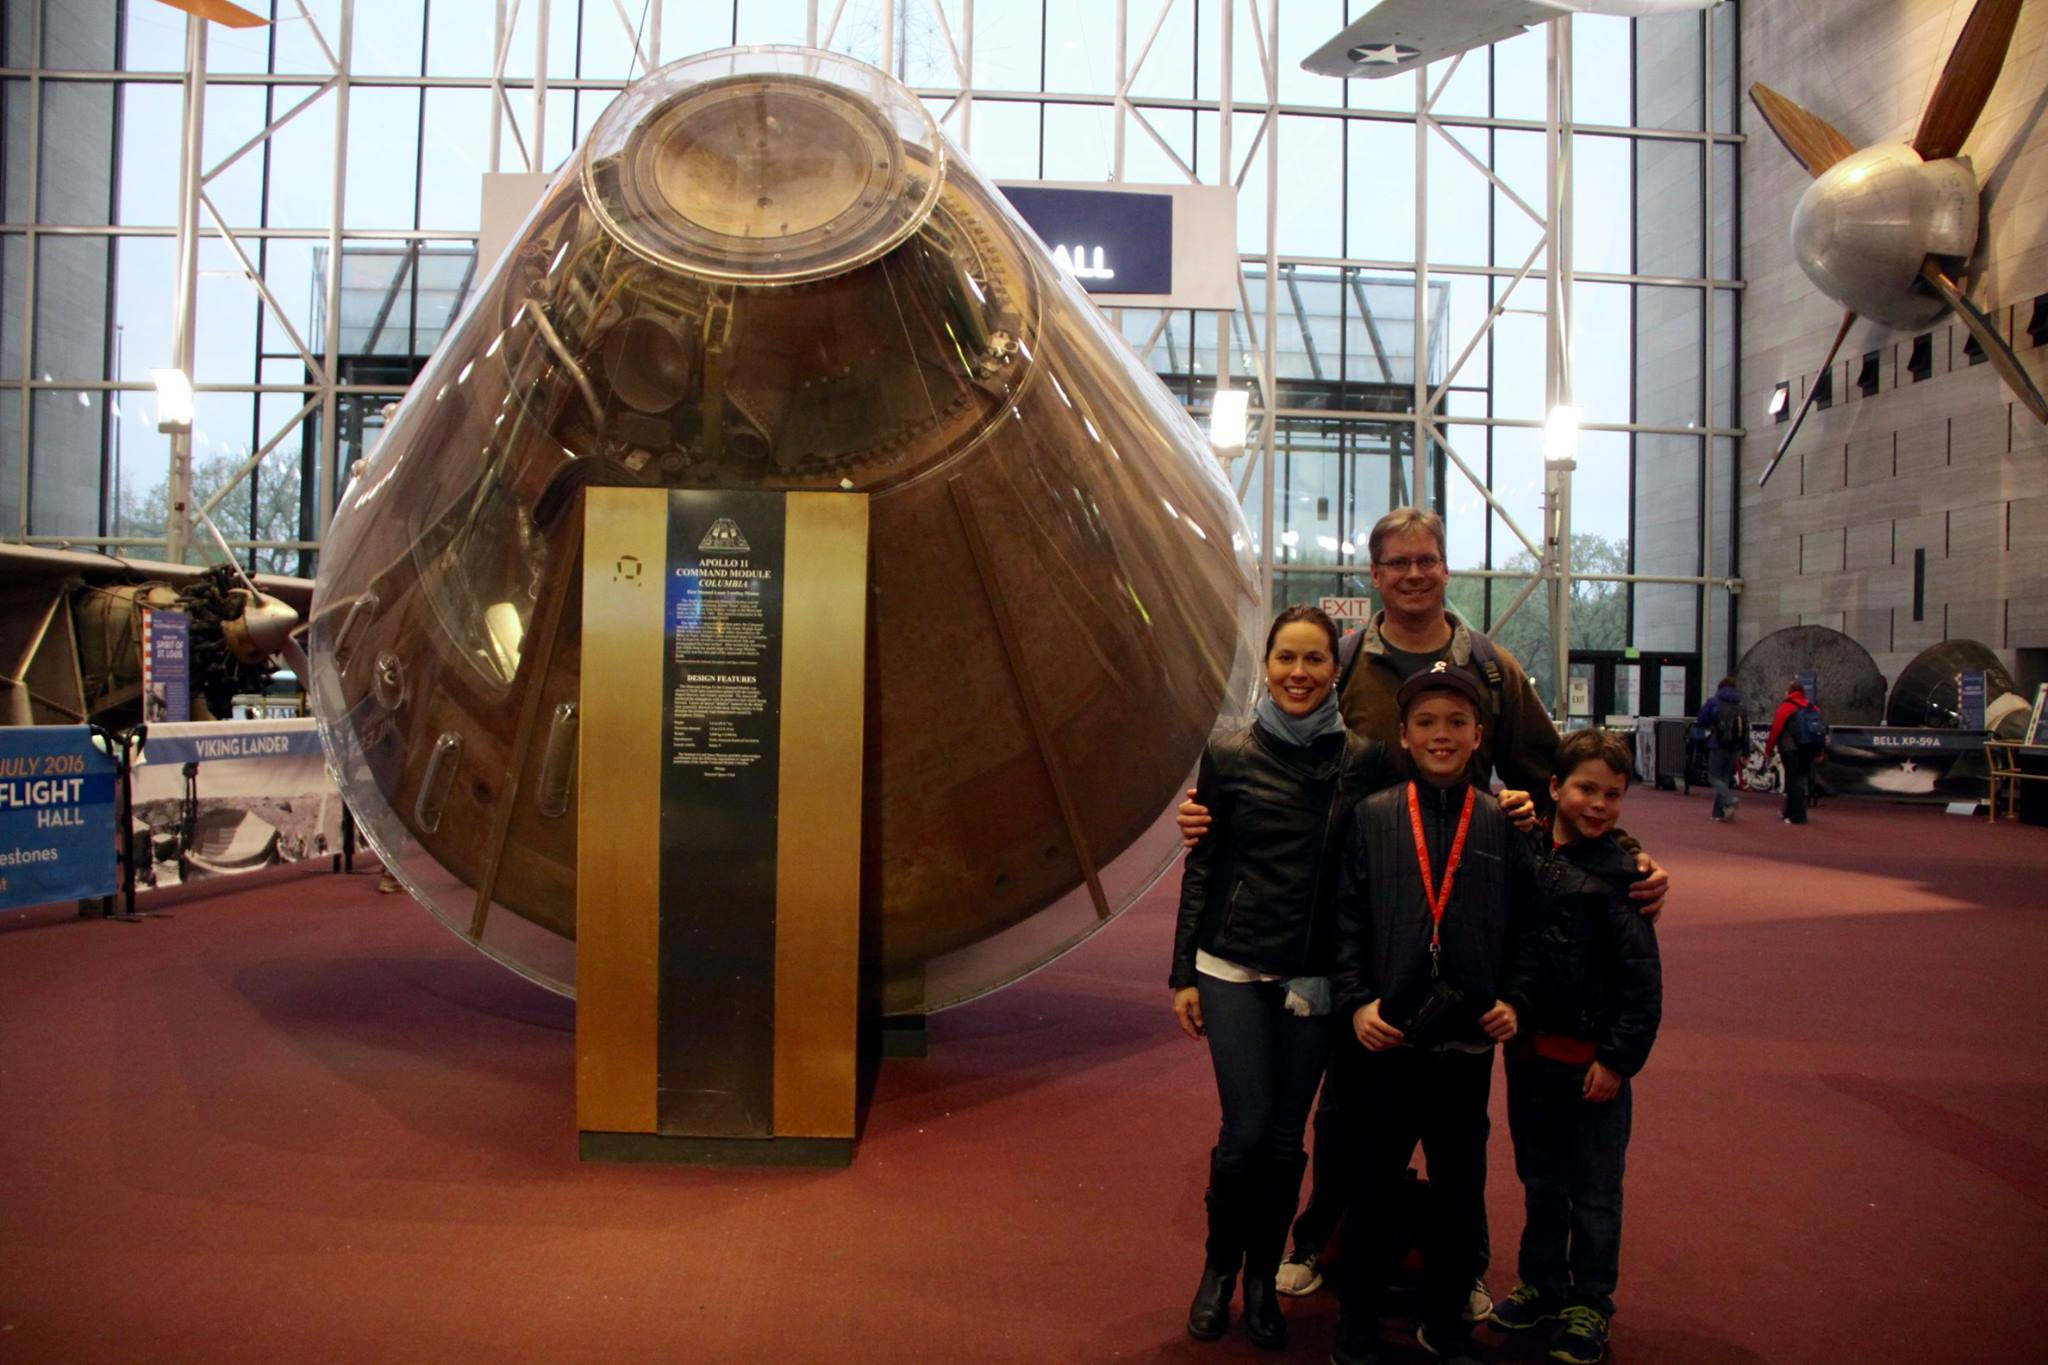 Want to blow the minds of shuttle-loving kids? Visit the National Air and Space Museum (NASM) in Washington, D.C. and get ready to watch!